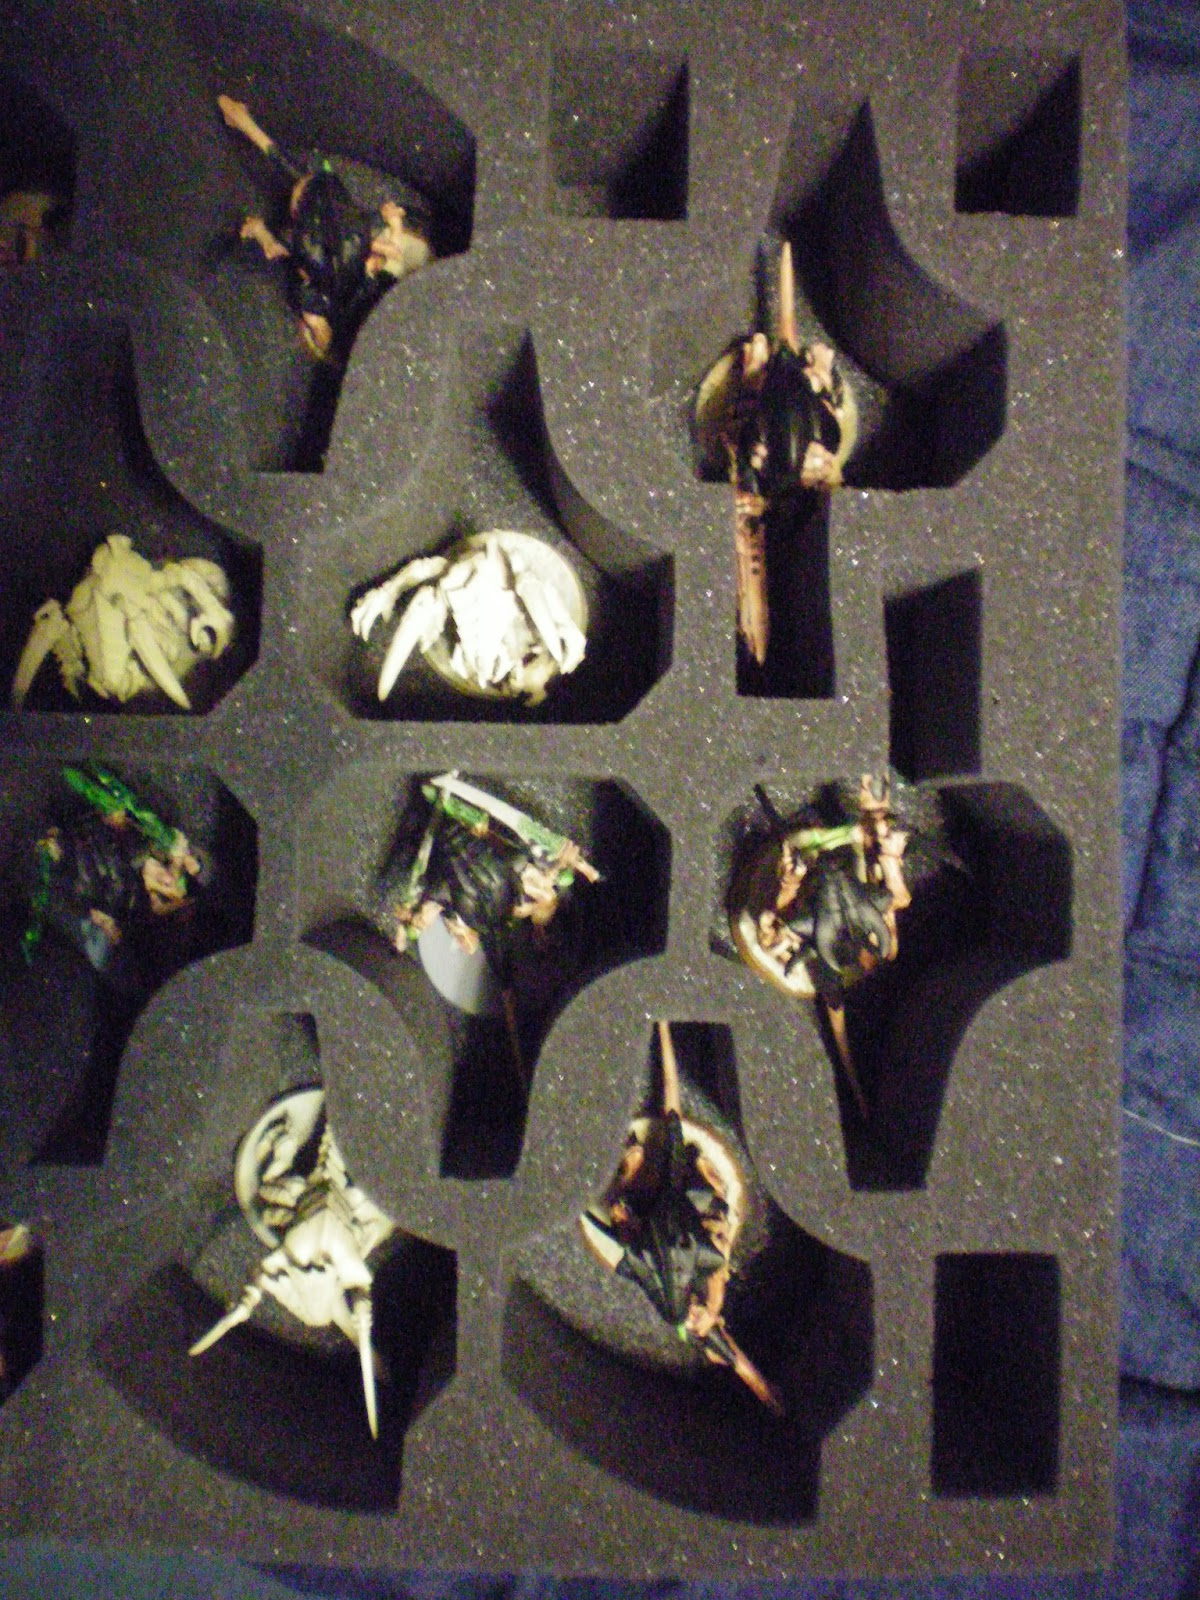 Prey In 40k Battlefoam Review Tyranid Trays Battle foam, llc updated their cover photo. prey in 40k blogger